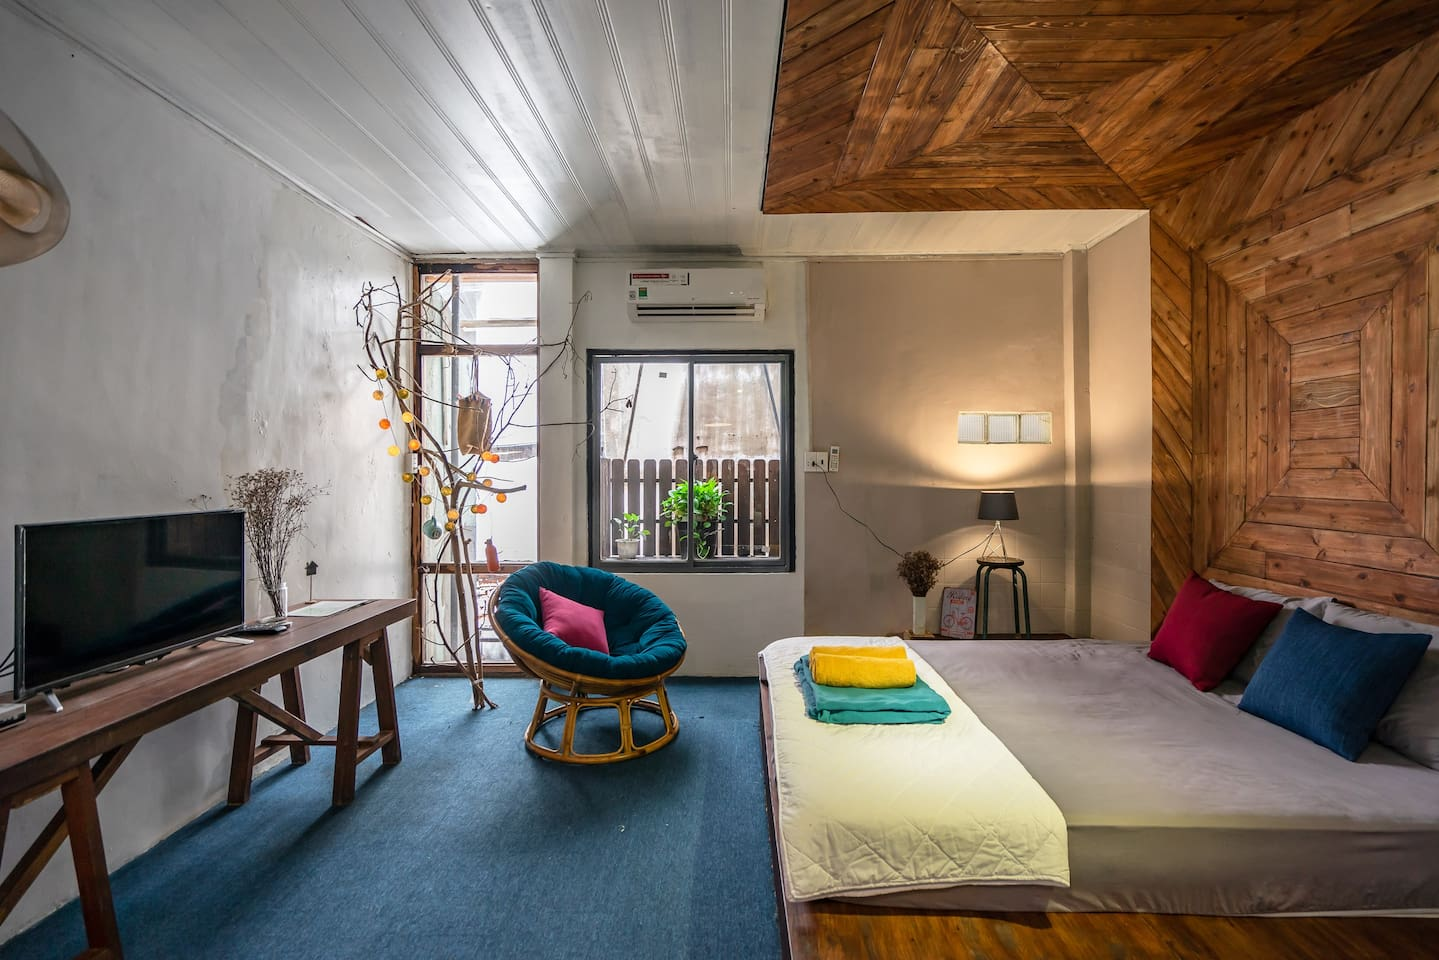 These 10 Airbnb Homes in Ho Chi Minh City Are Both Stylish & Wallet-Friendly